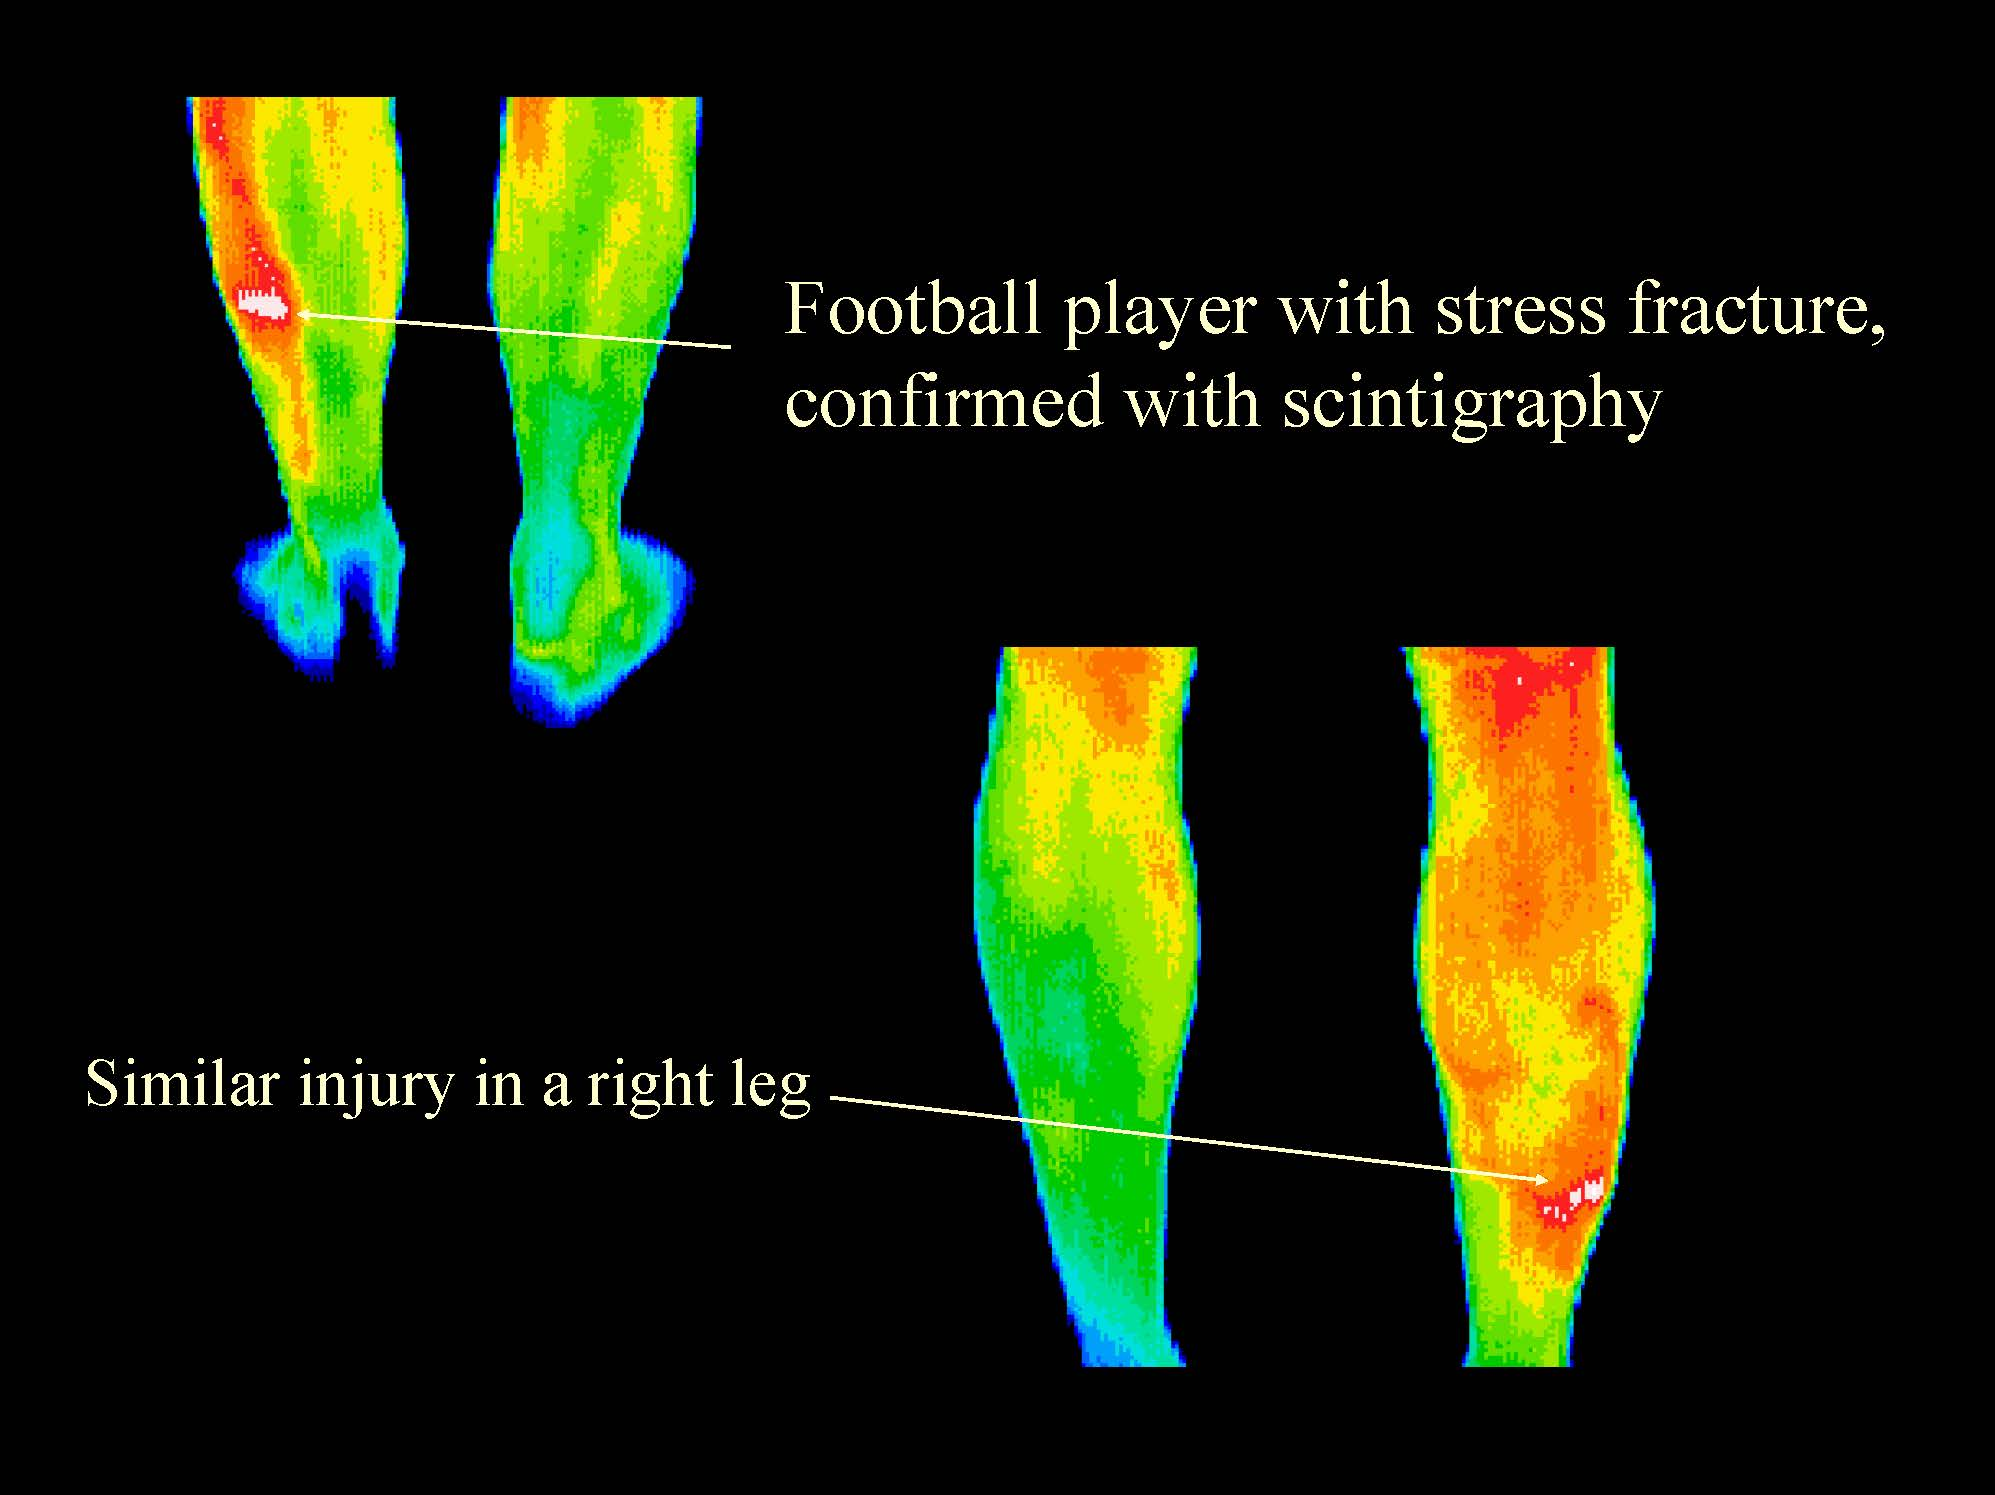 Conditions-and-Injuries_Page_10.jpg